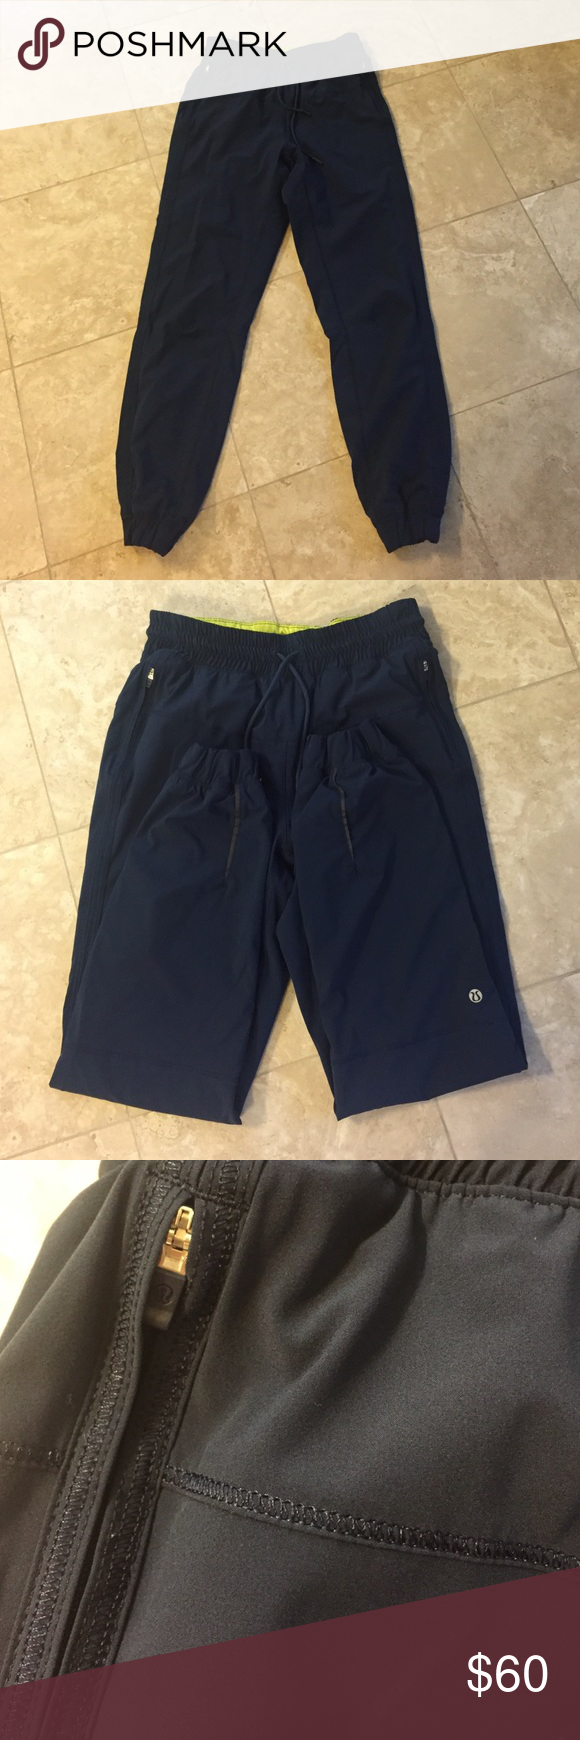 Lululemon pants 4 Lululemon pants 4. Great condition. They are navy blue ( sorry camera didn't cooperate with me) lululemon athletica Pants Track Pants & Joggers